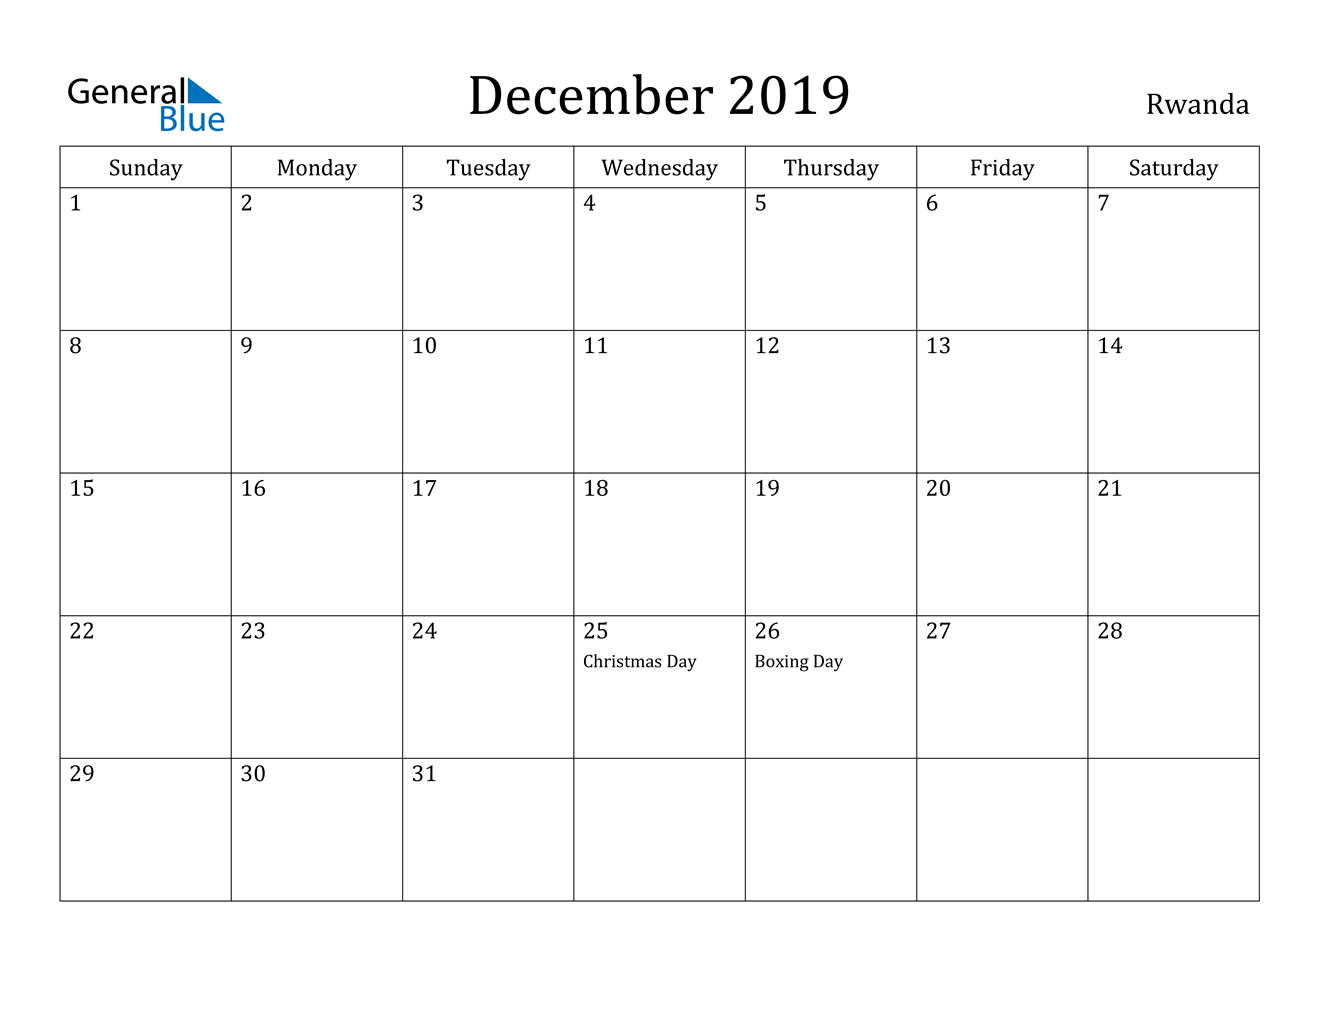 Image of December 2019 Rwanda Calendar with Holidays Calendar